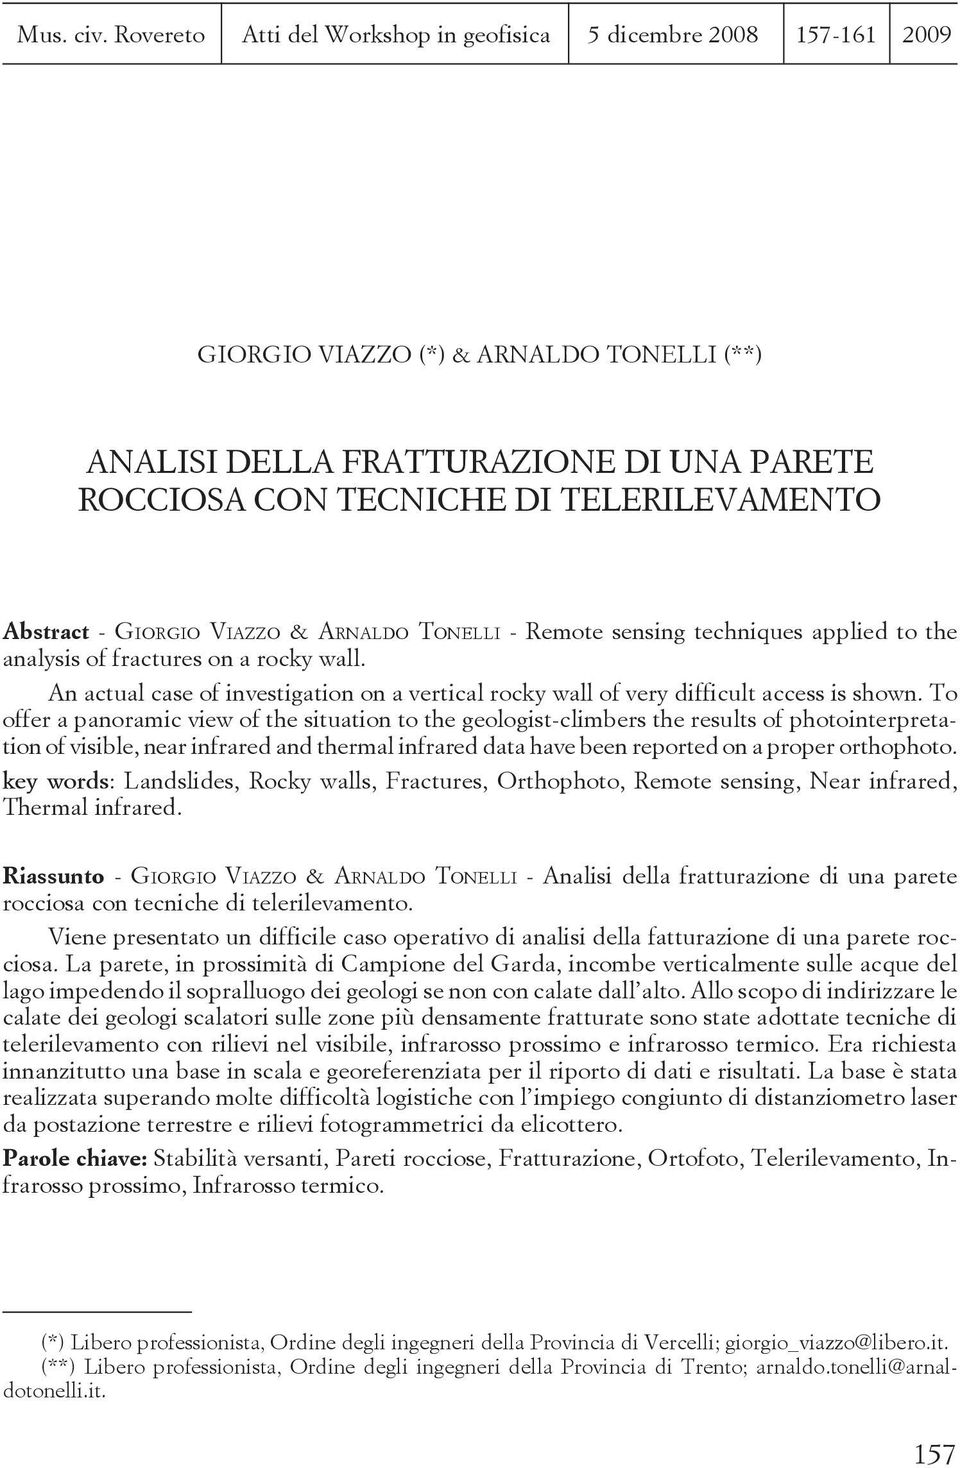 Abstract - GIORGIO VIAZZO & ARNALDO TONELLI - Remote sensing techniques applied to the analysis of fractures on a rocky wall.